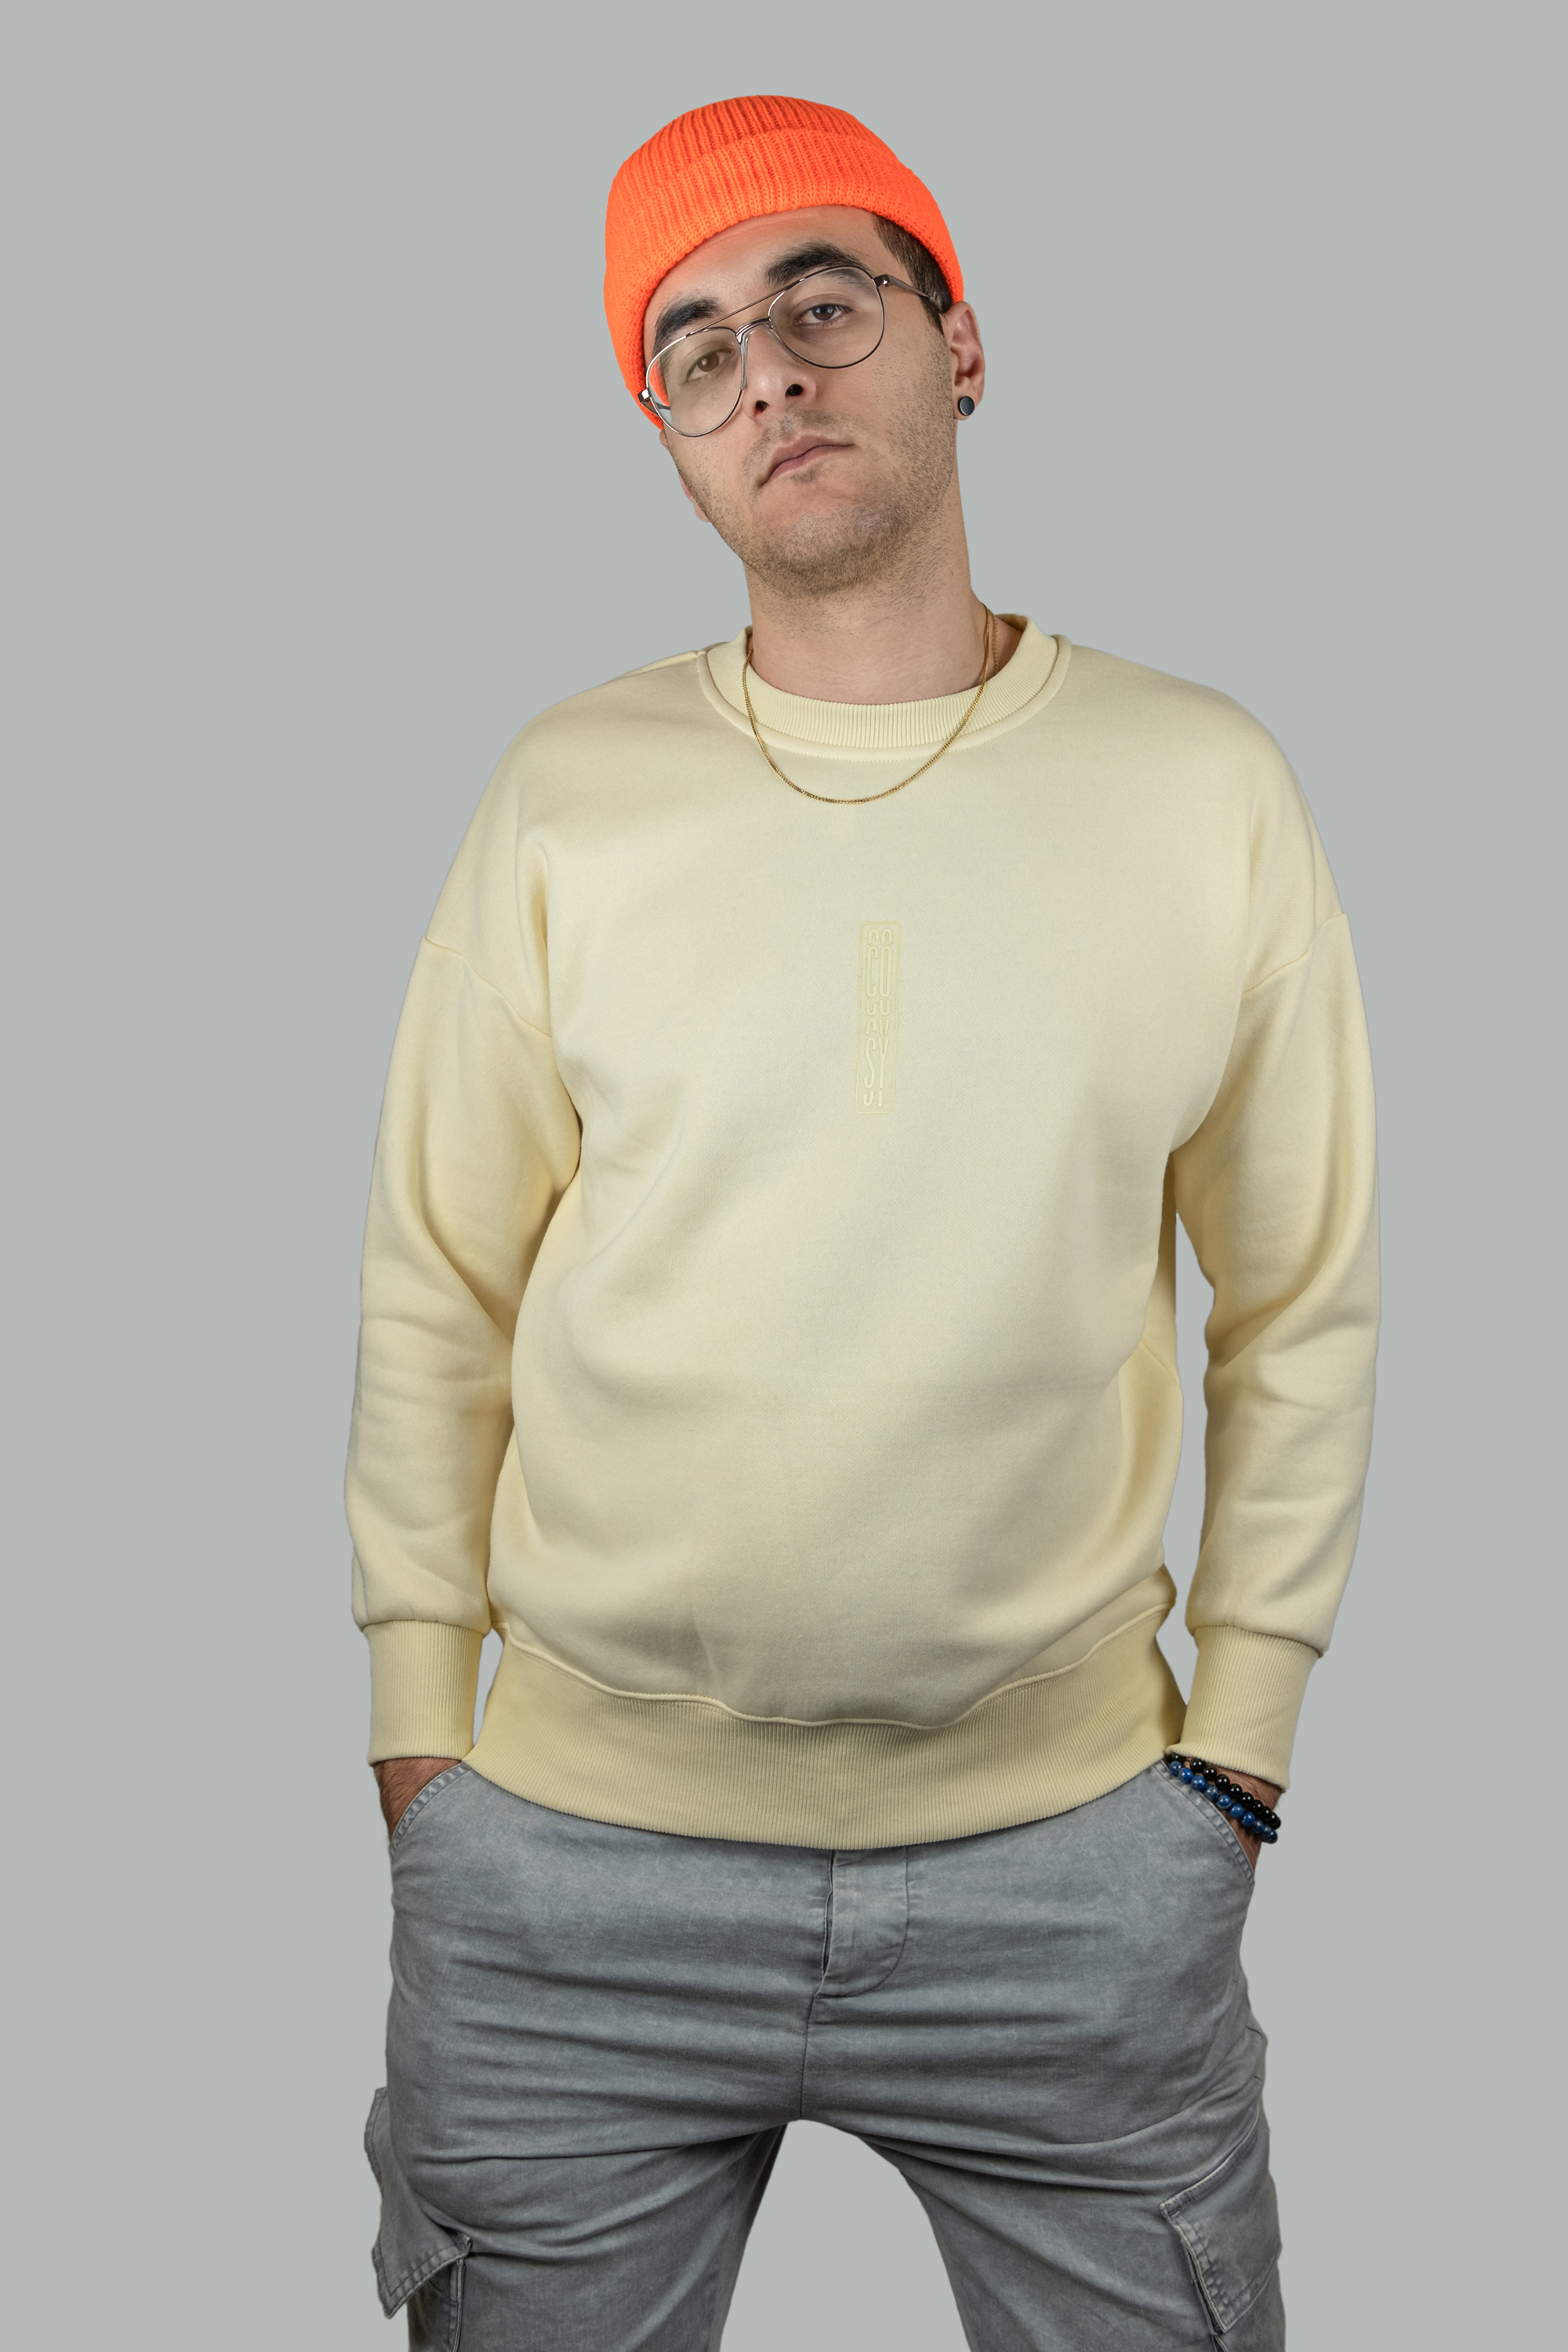 Heavyweight Crewneck Sweatshirt in Cream